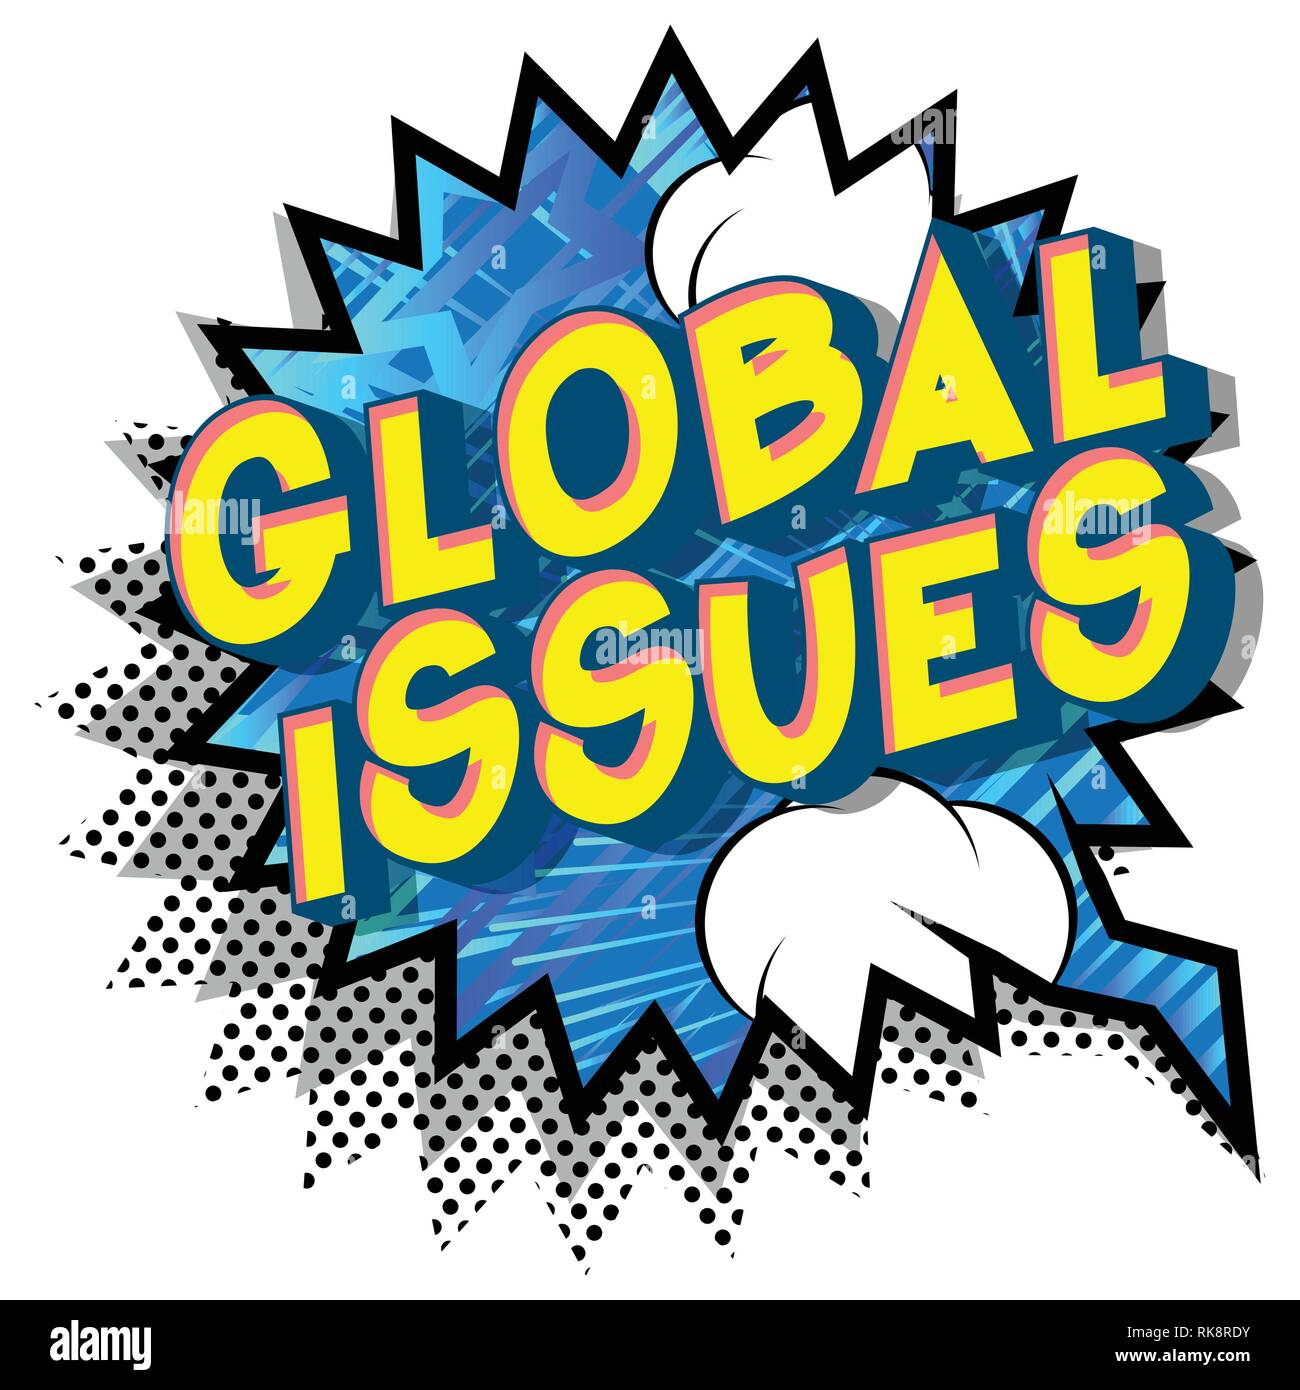 Global Issues - Vector illustrated comic book style phrase on abstract background. - Stock Vector